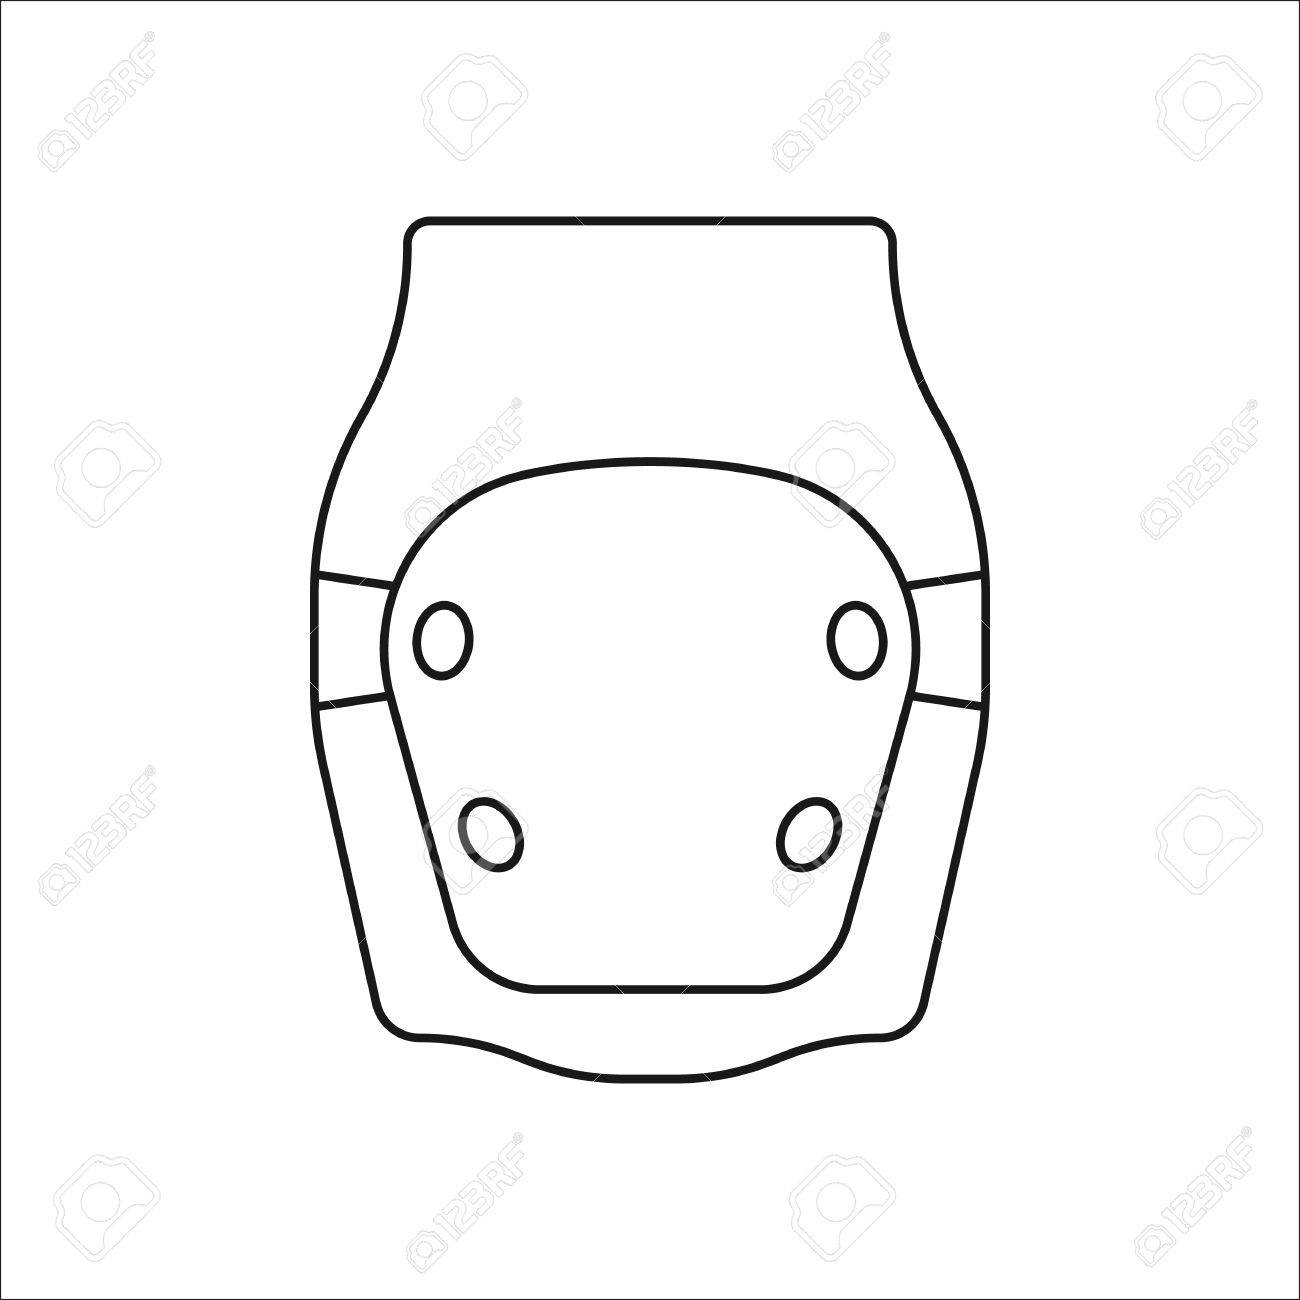 Skateboard Knee Pad Or Protector Symbol Sign Line Icon On Background